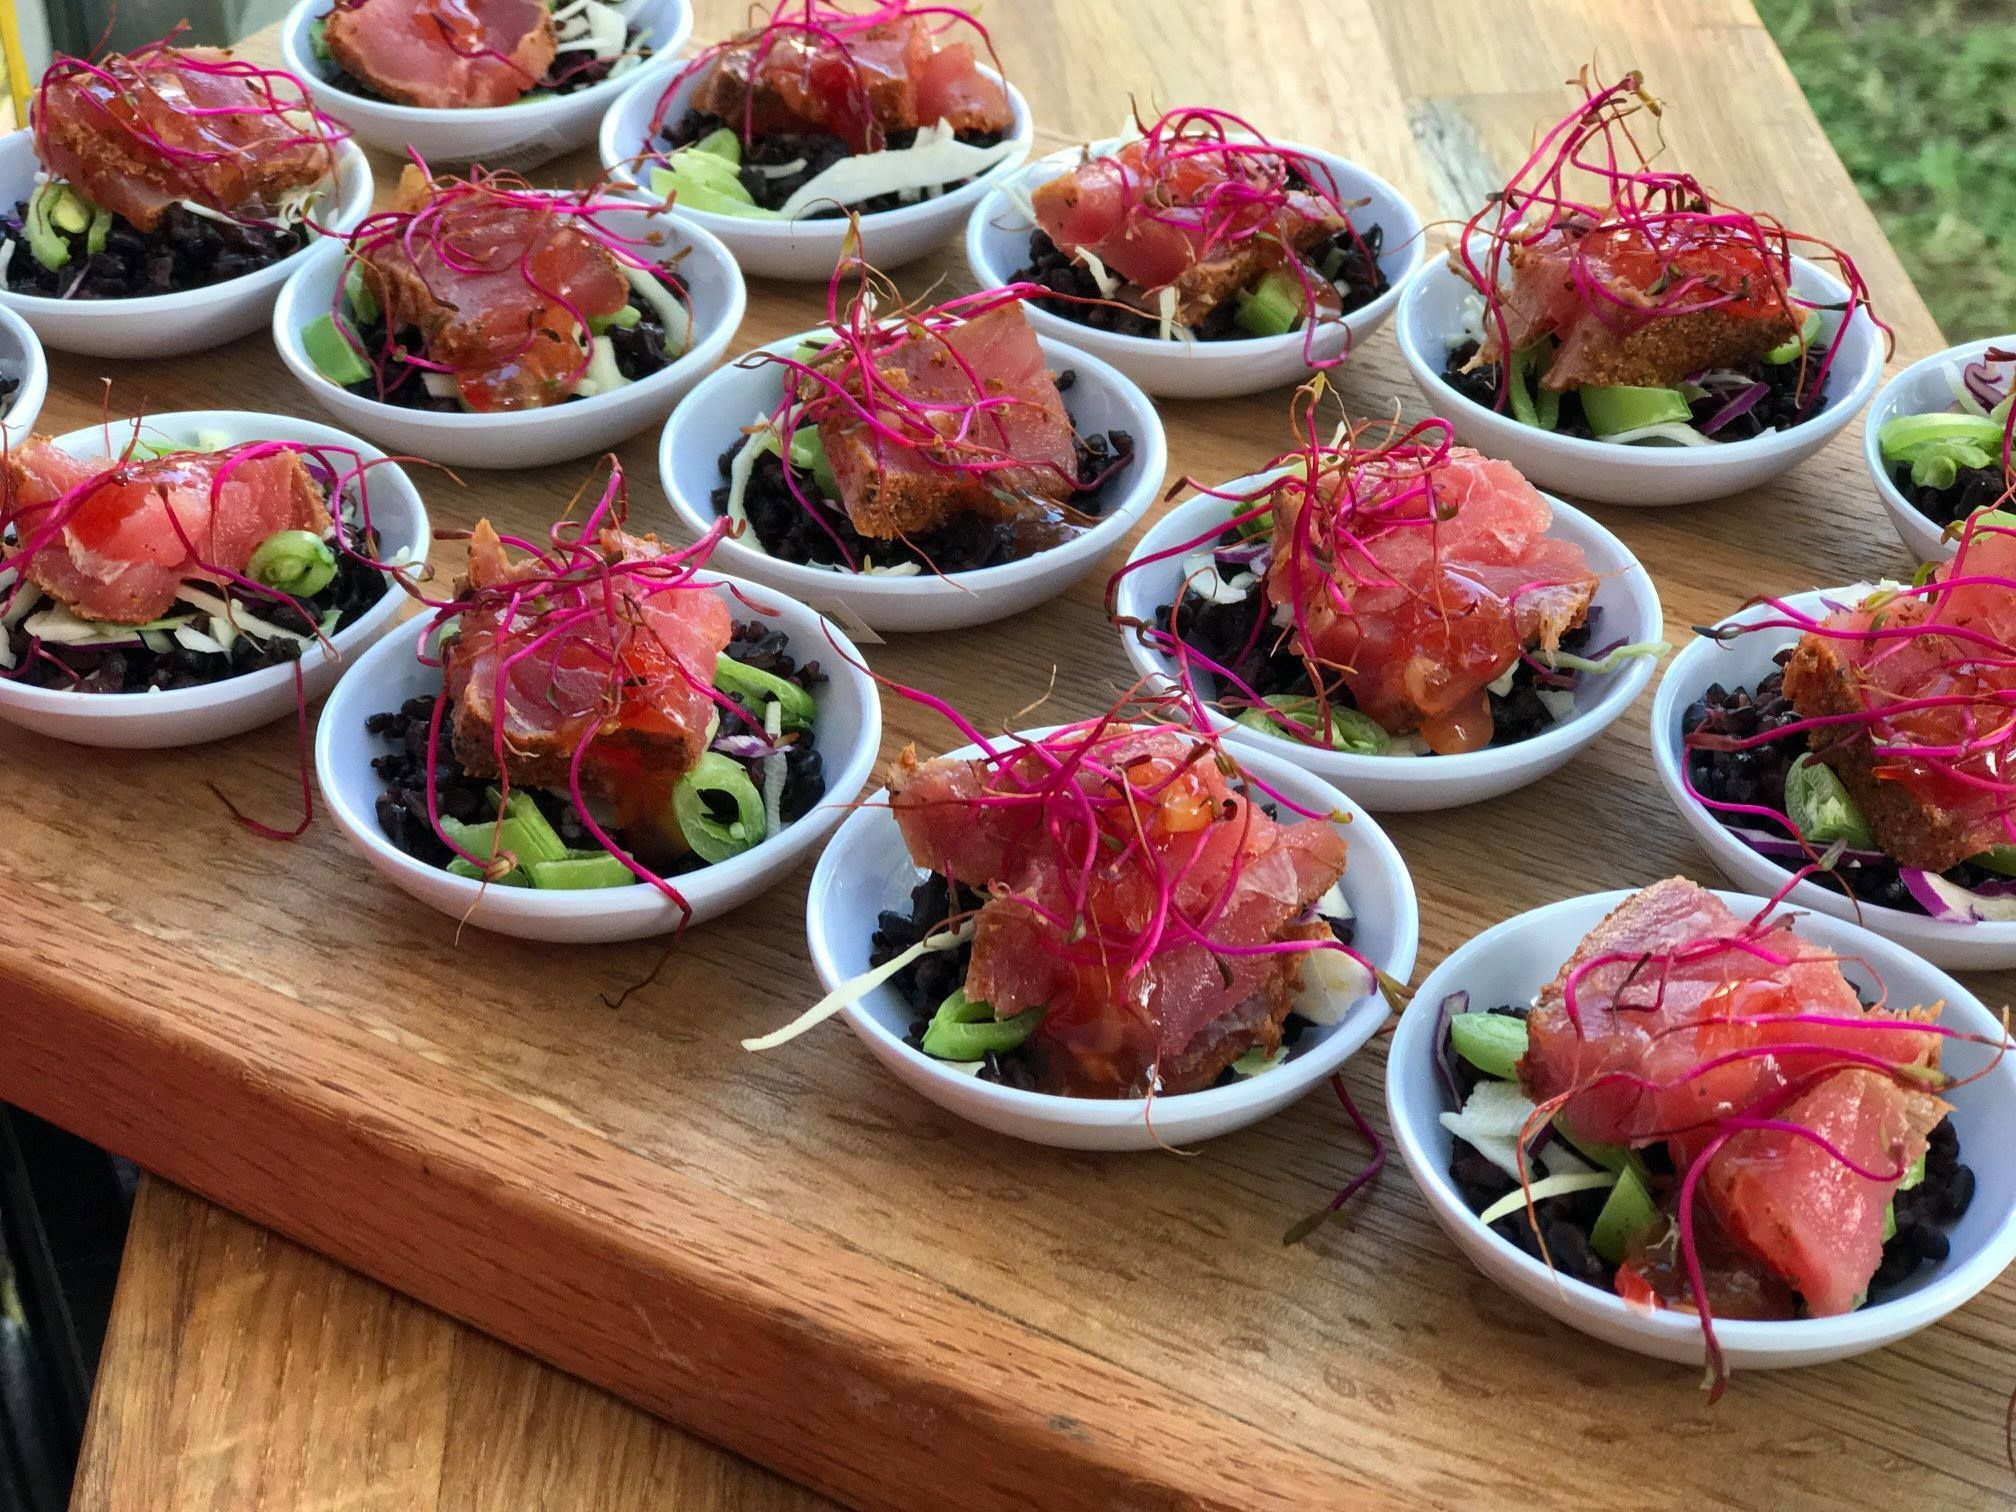 Wedding Food Ideas Wedding Catering Tampa Catering Elegant Wedding Dishes Plated Foo Food Truck Catering Food Truck Wedding Wedding Food Truck Catering